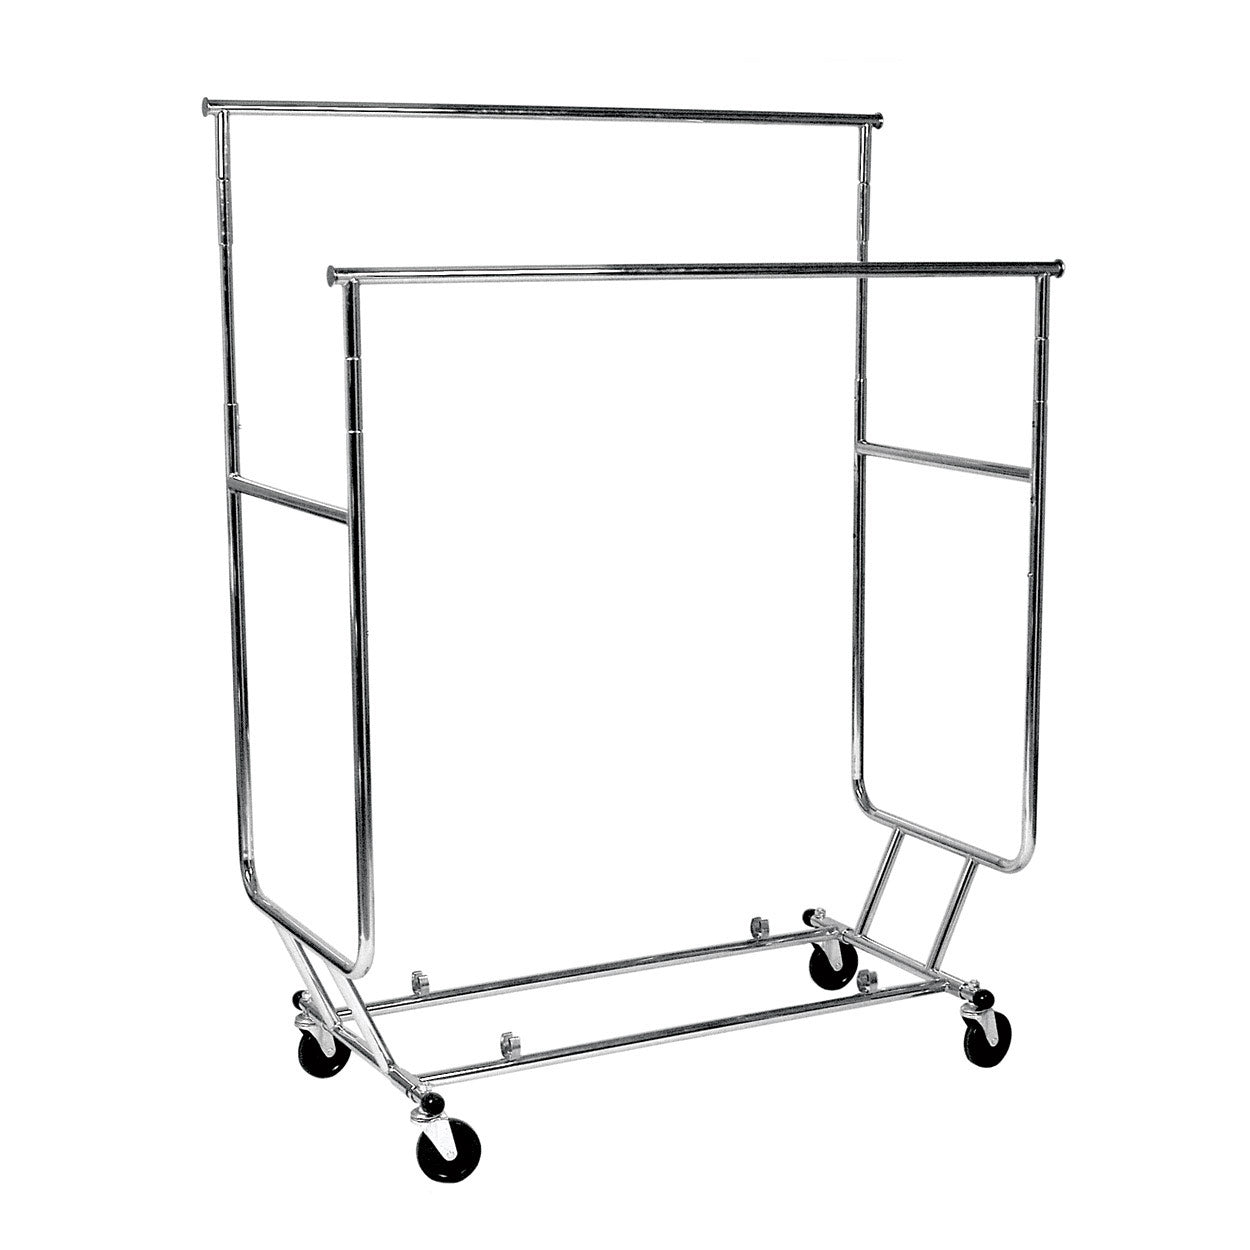 Double Bar Collapsible Clothing Rack